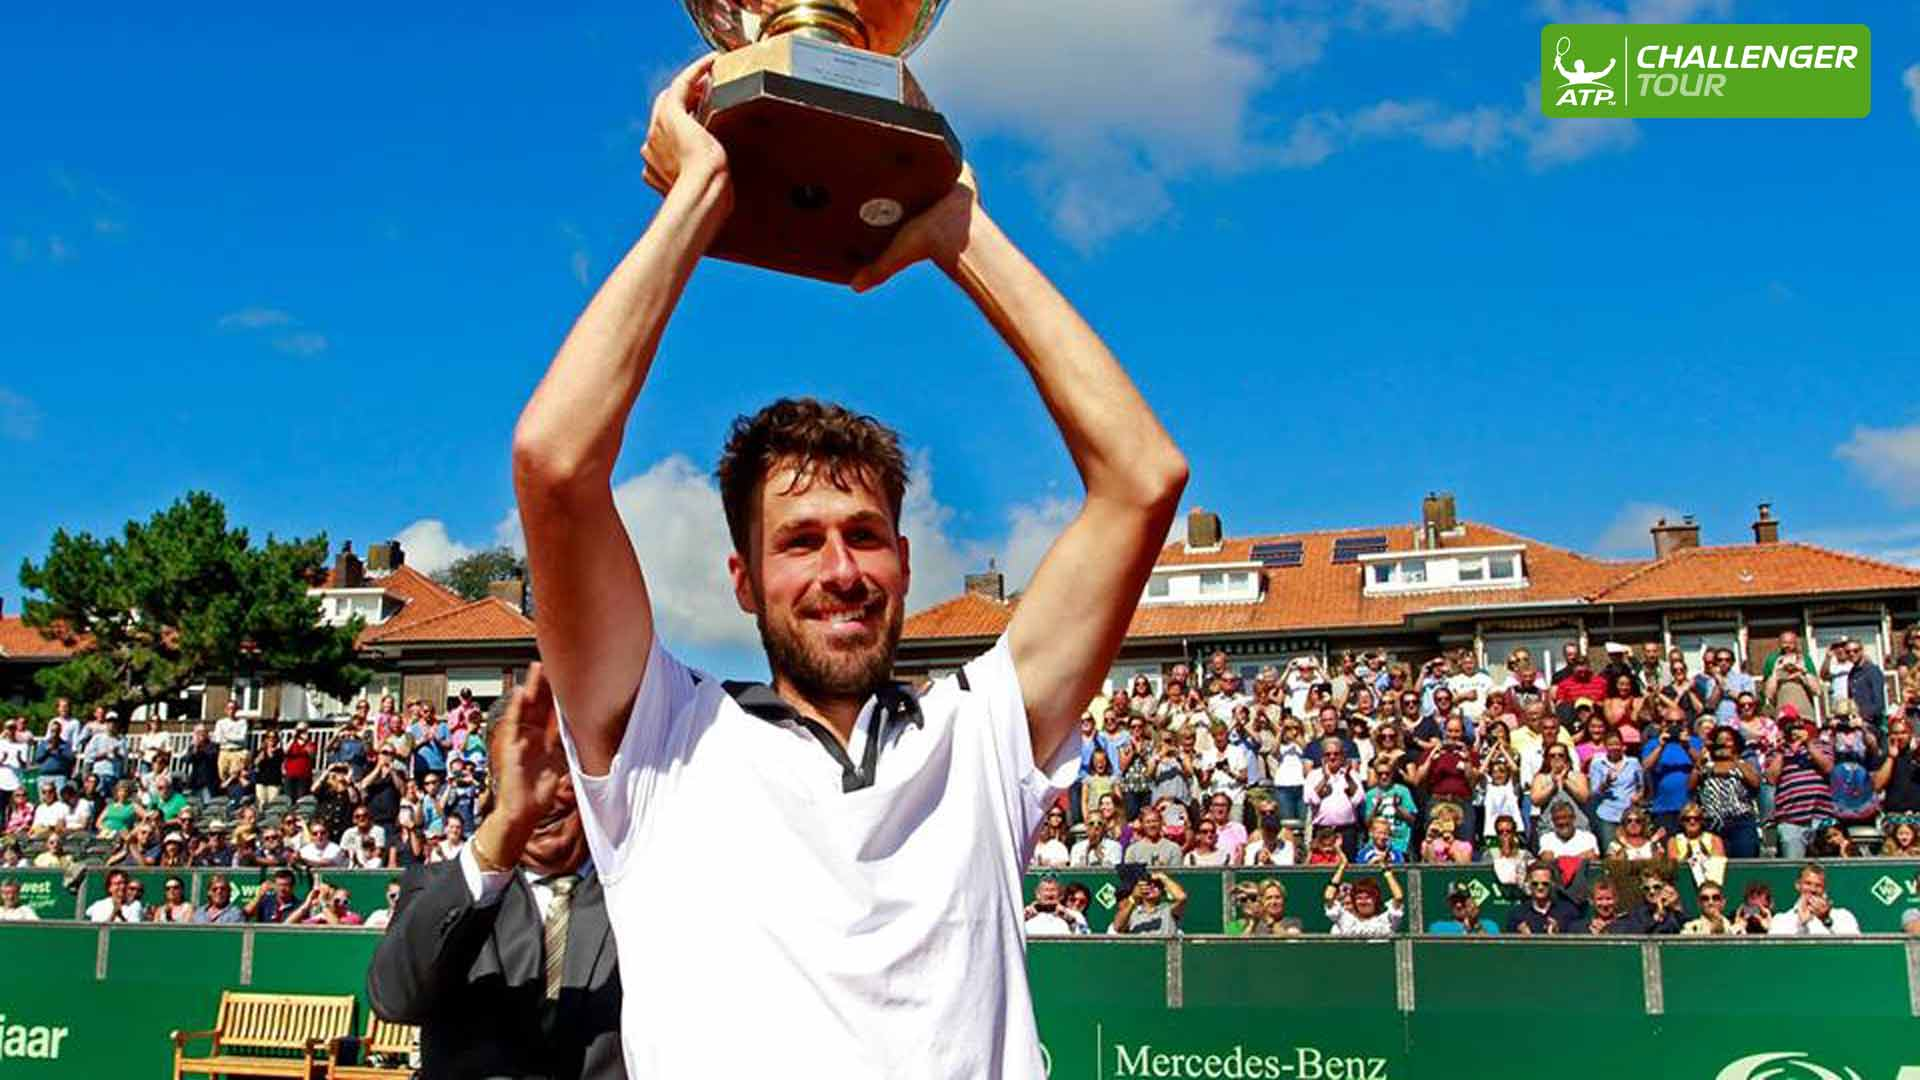 Dutchman Robin Haase prevails on home soil at the ATP Challenger Tour event in Scheveningen.